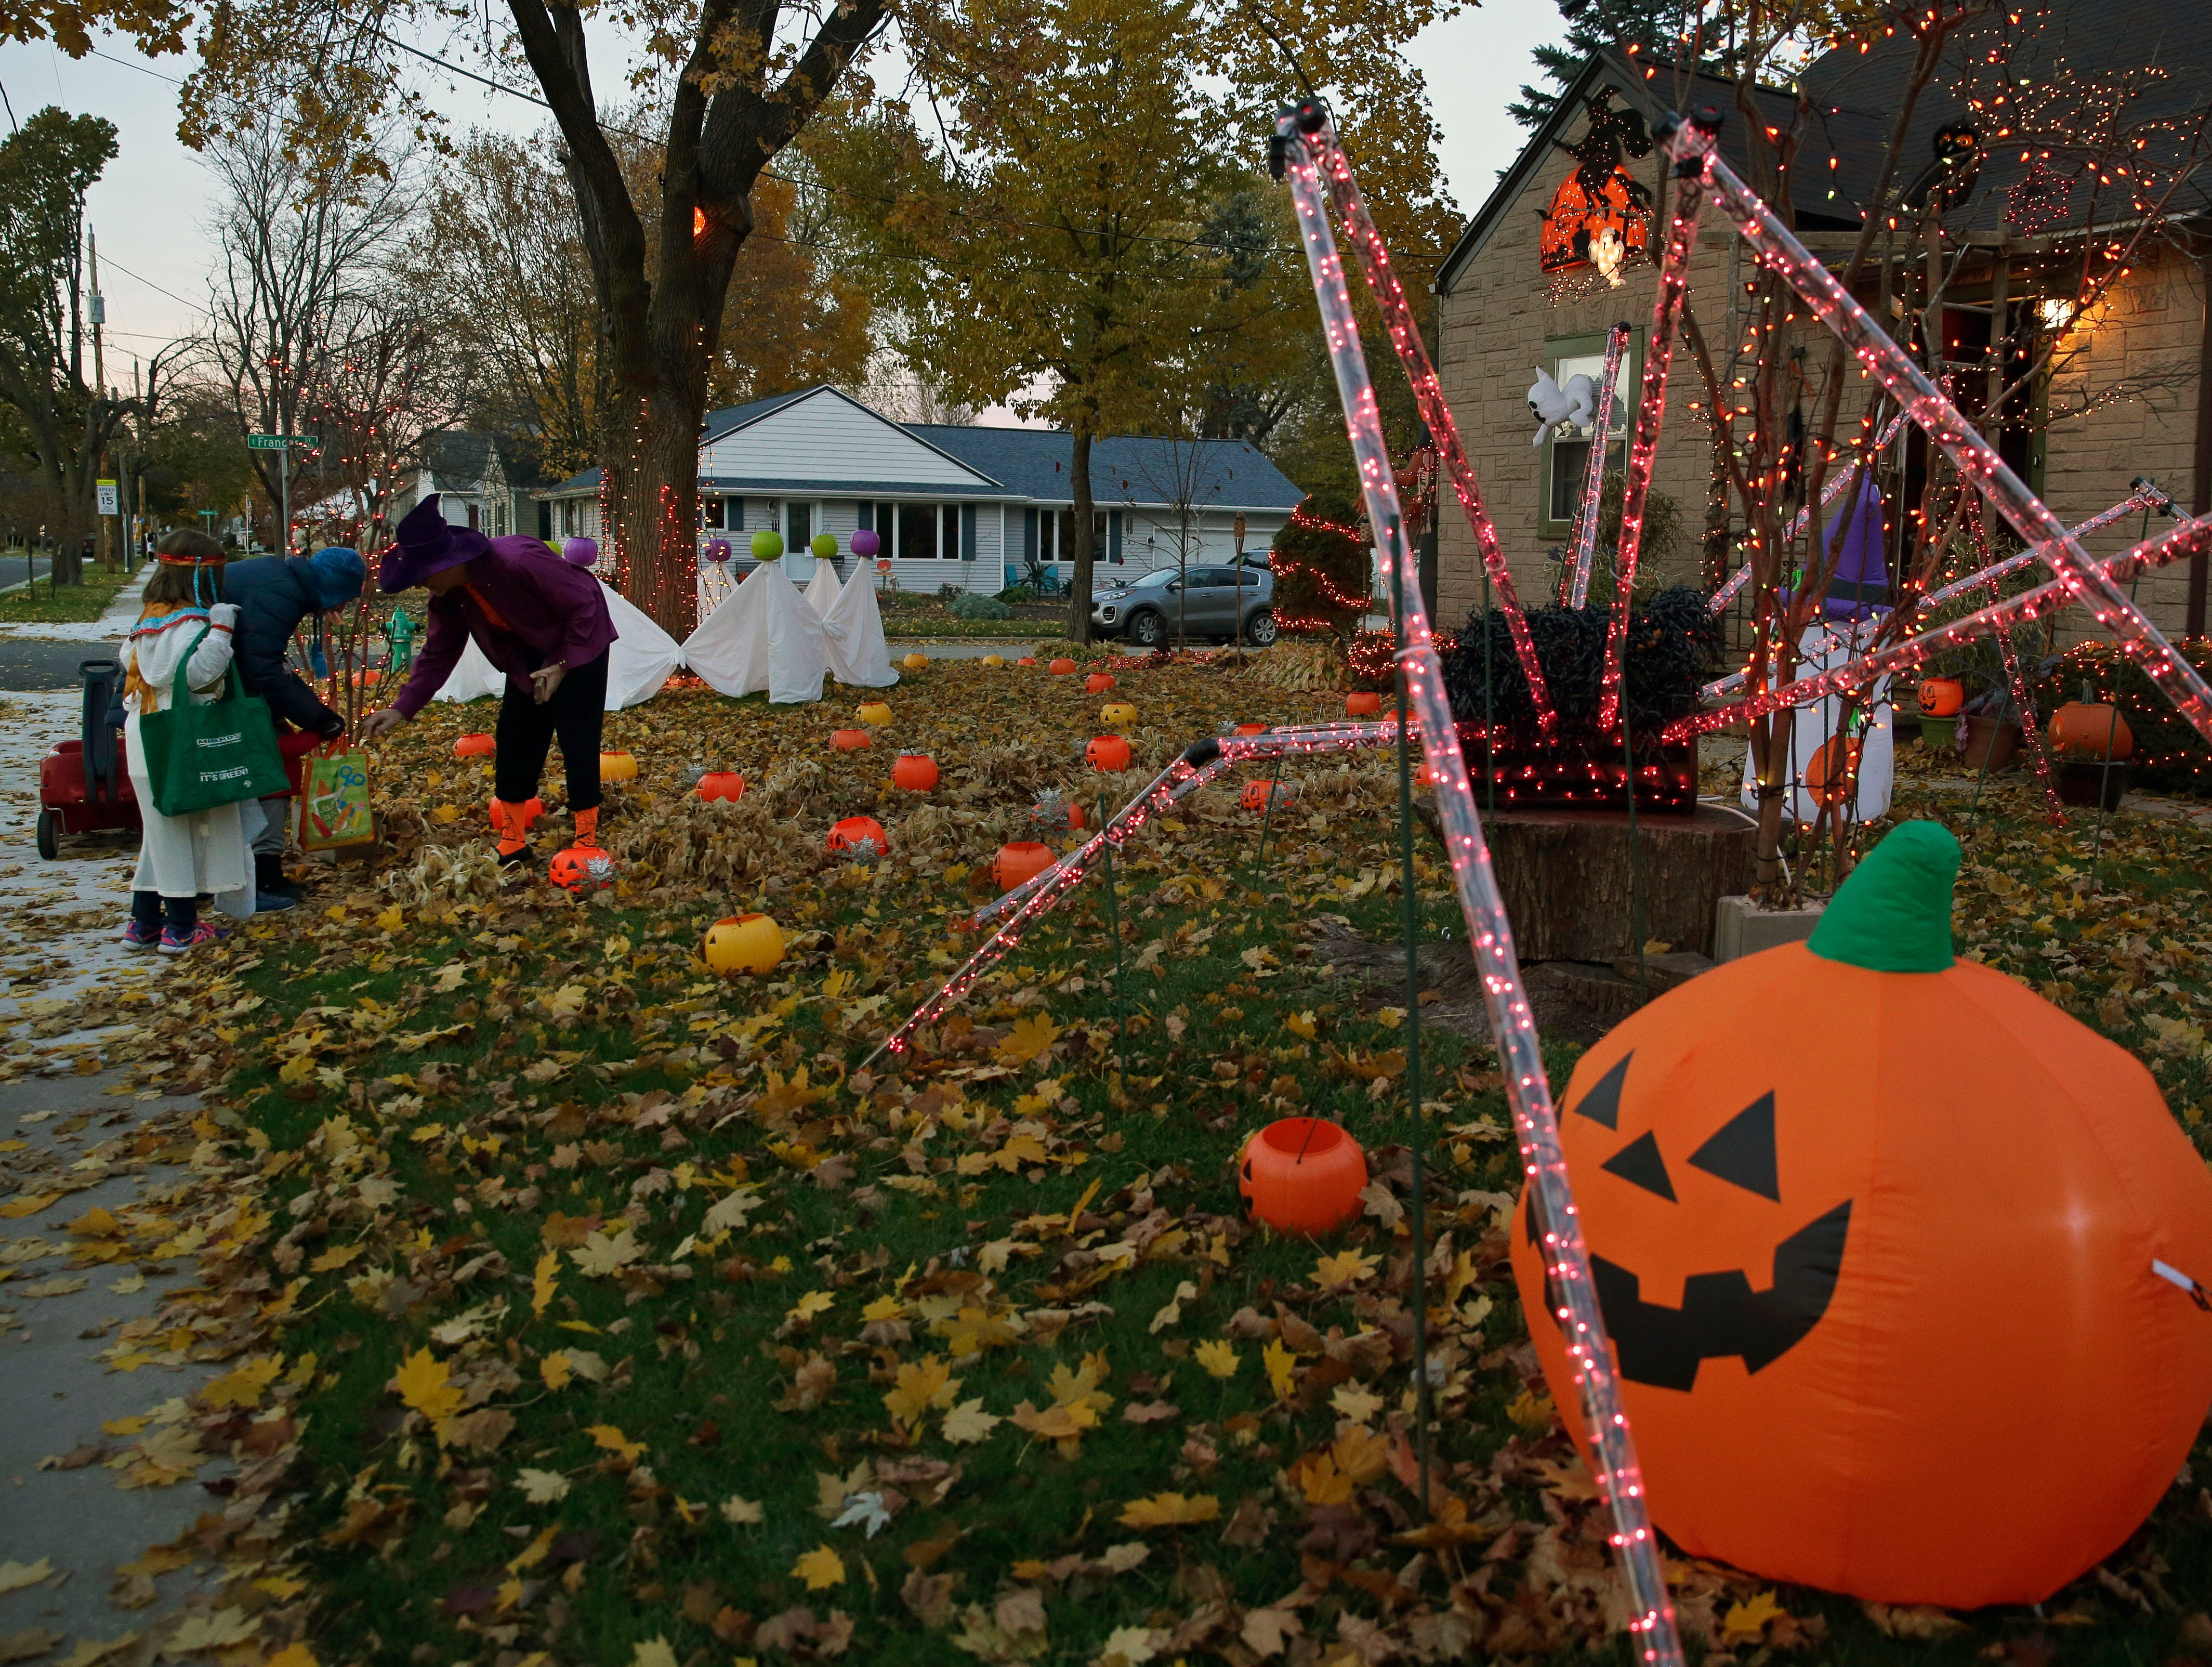 Brian Kemp has his house decorated for the big day as he passes out candy to trick-or-treaters Wednesday, October 31, 2018, in Appleton, Wis.